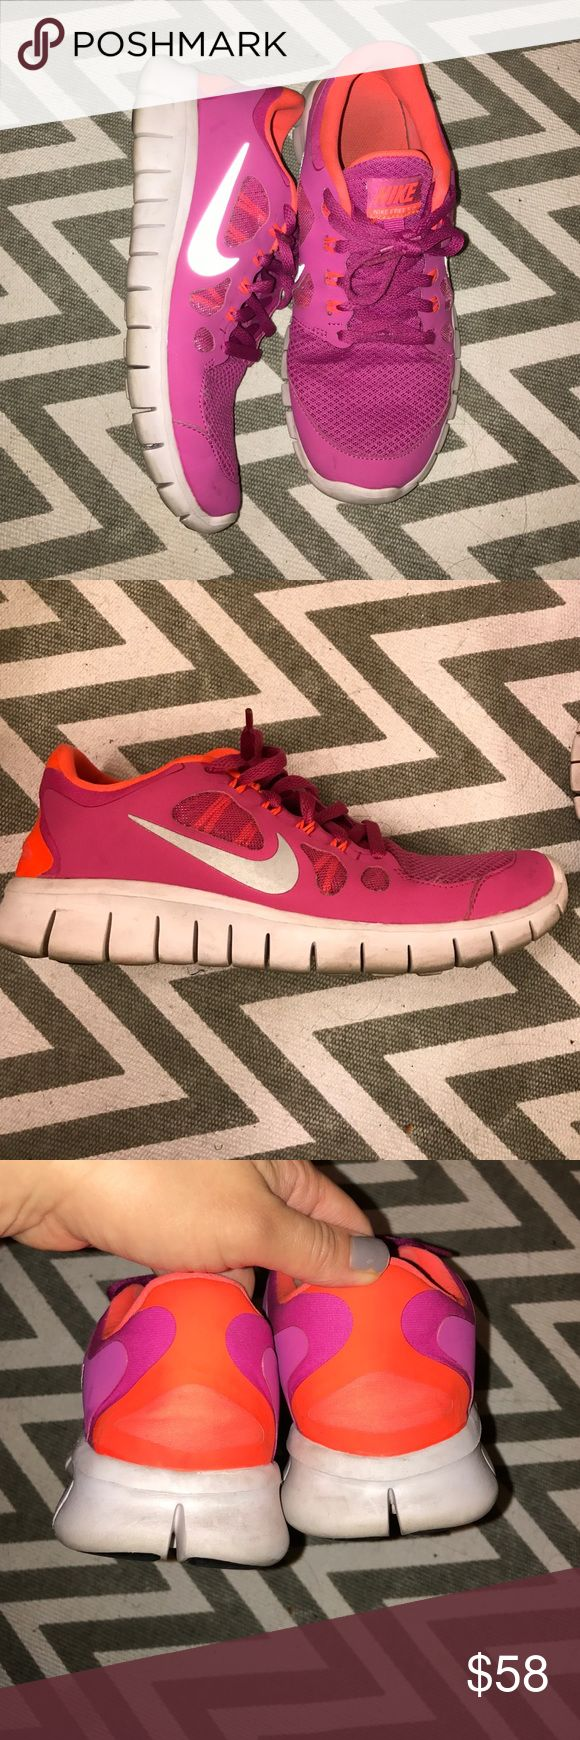 NIke free 5.0 Used in very good condition, these are great pair of comfortable sneakers. Nike Shoes Sneakers